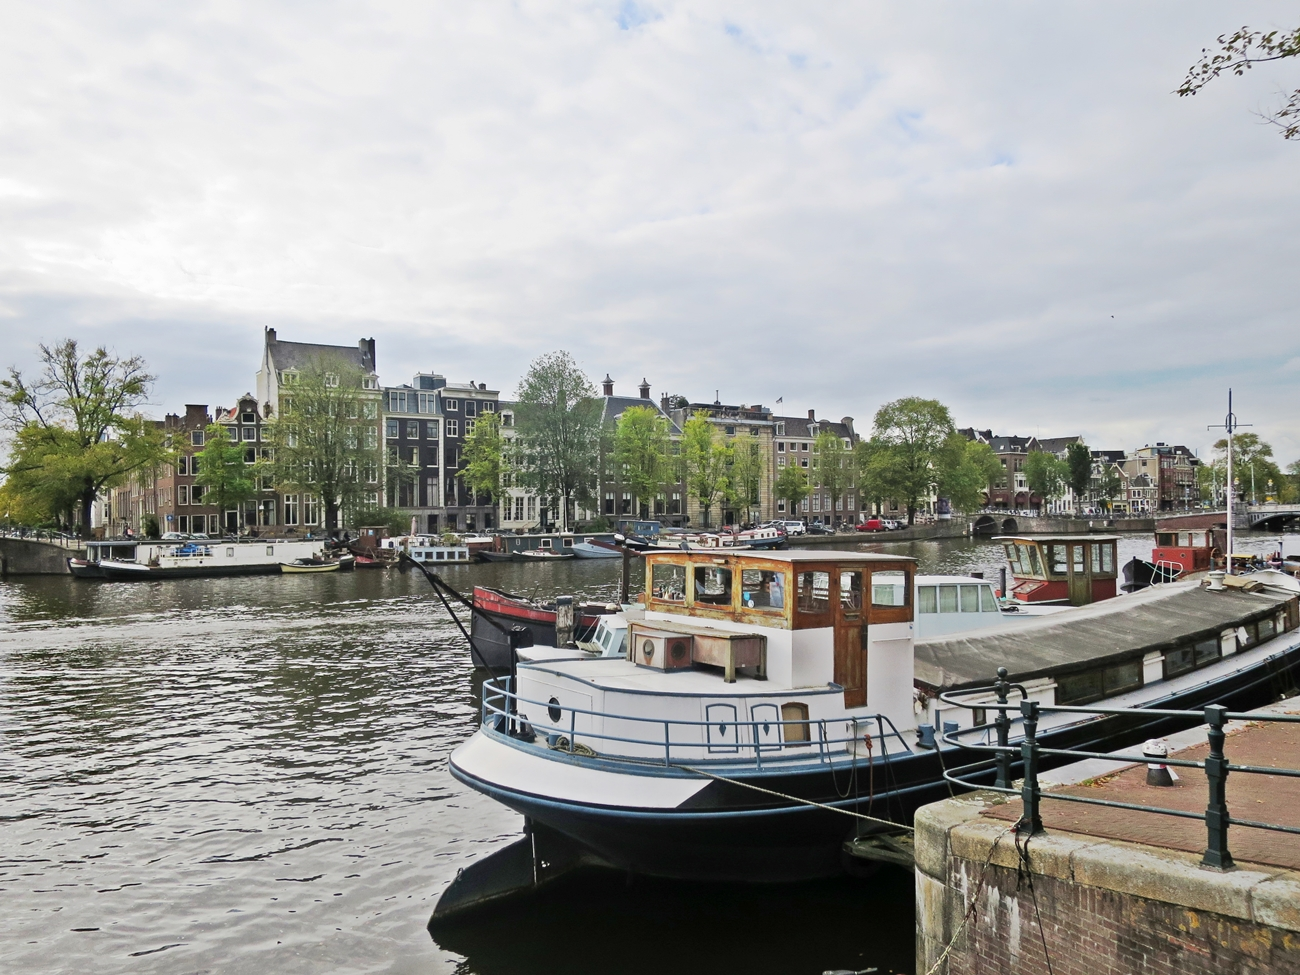 amsterdam-netherlands-day010-04